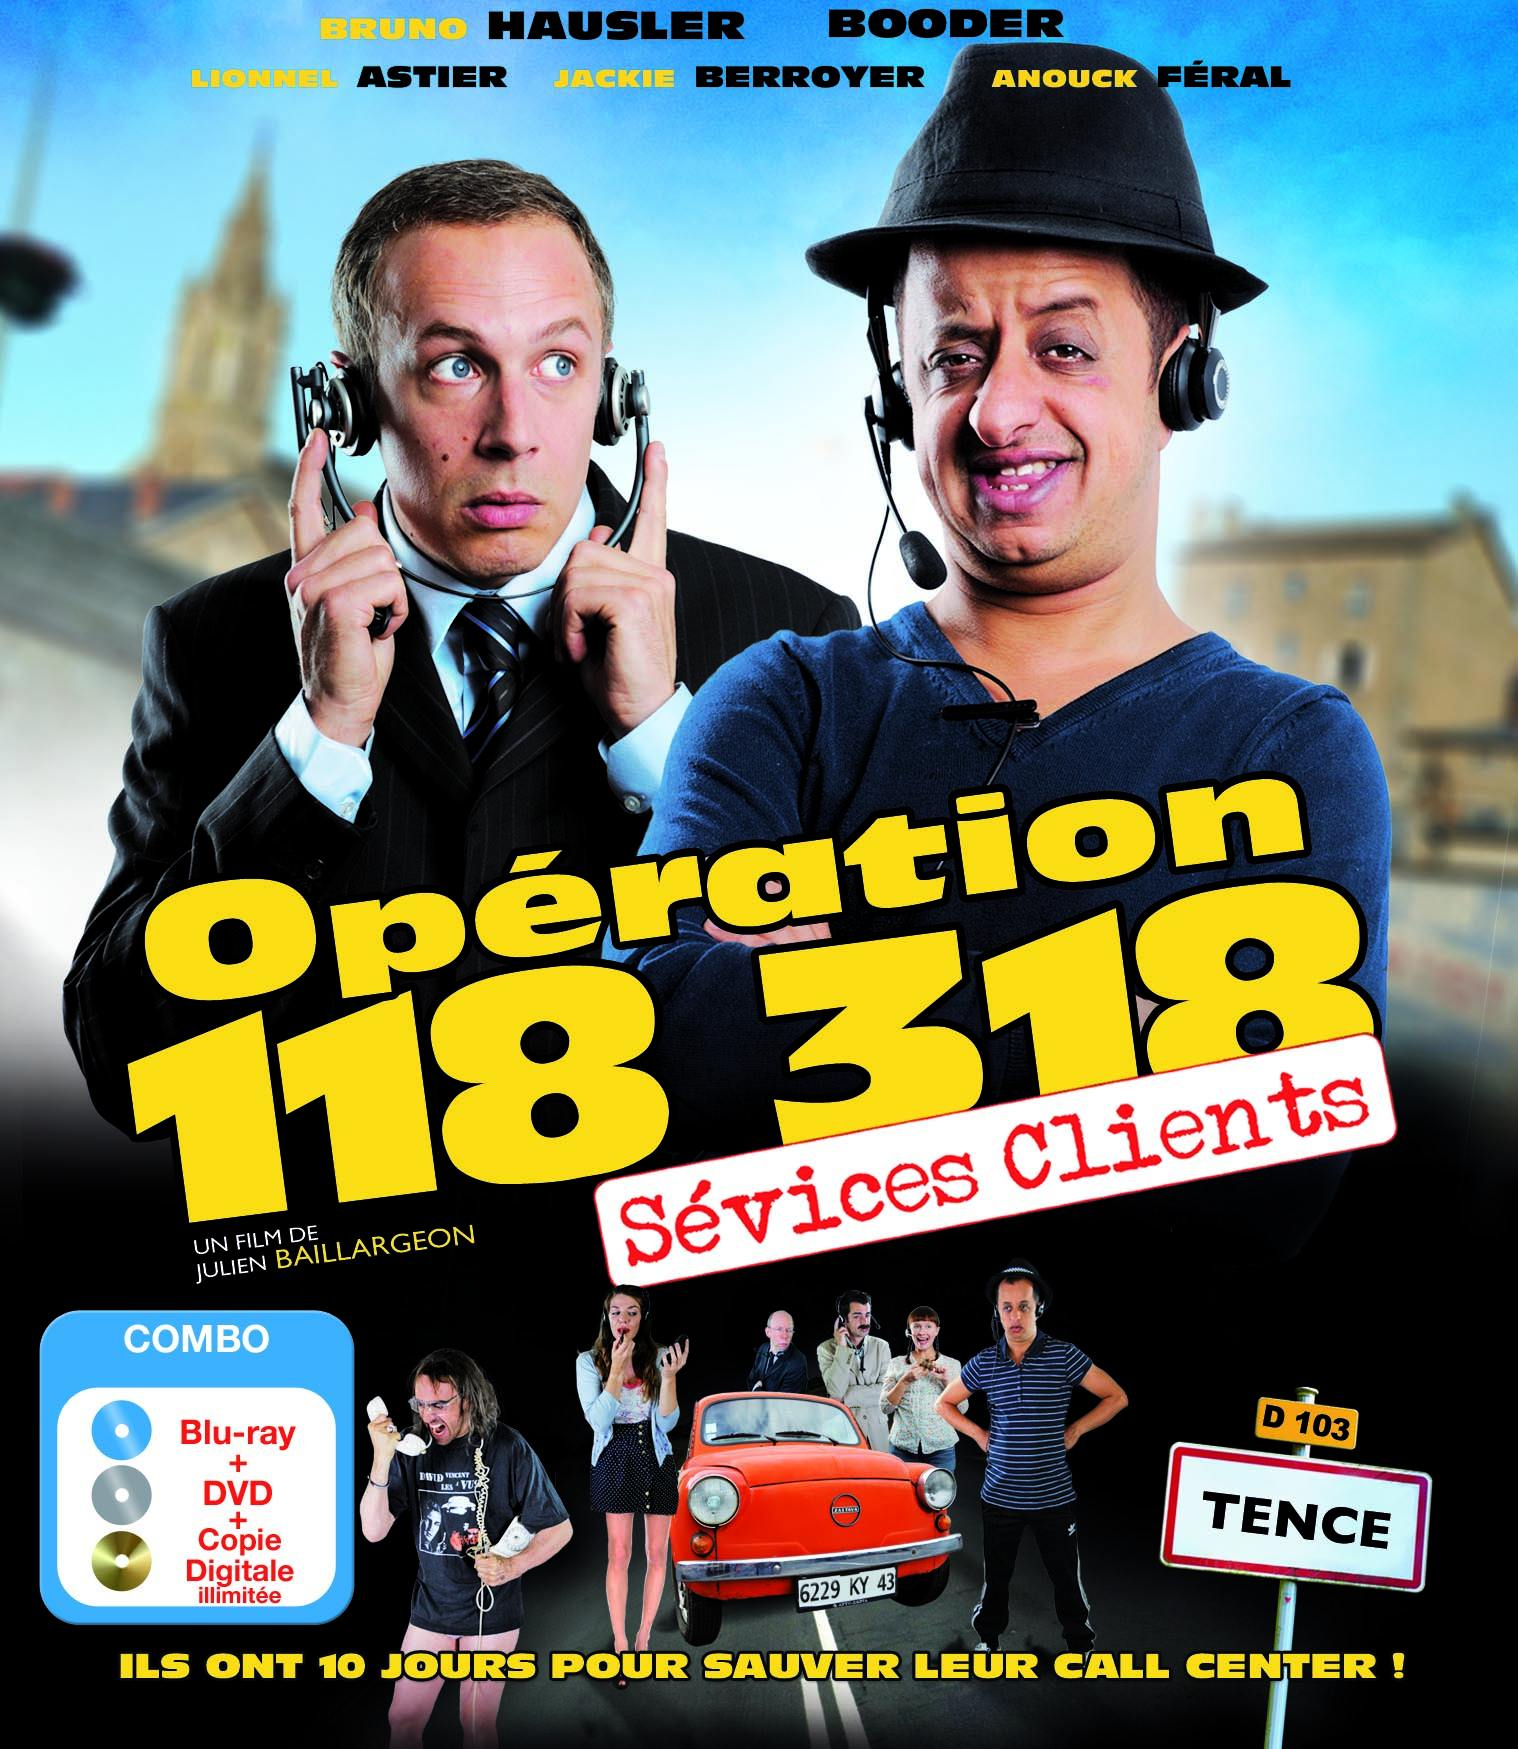 Operation 118 318 - combo  sevice clients